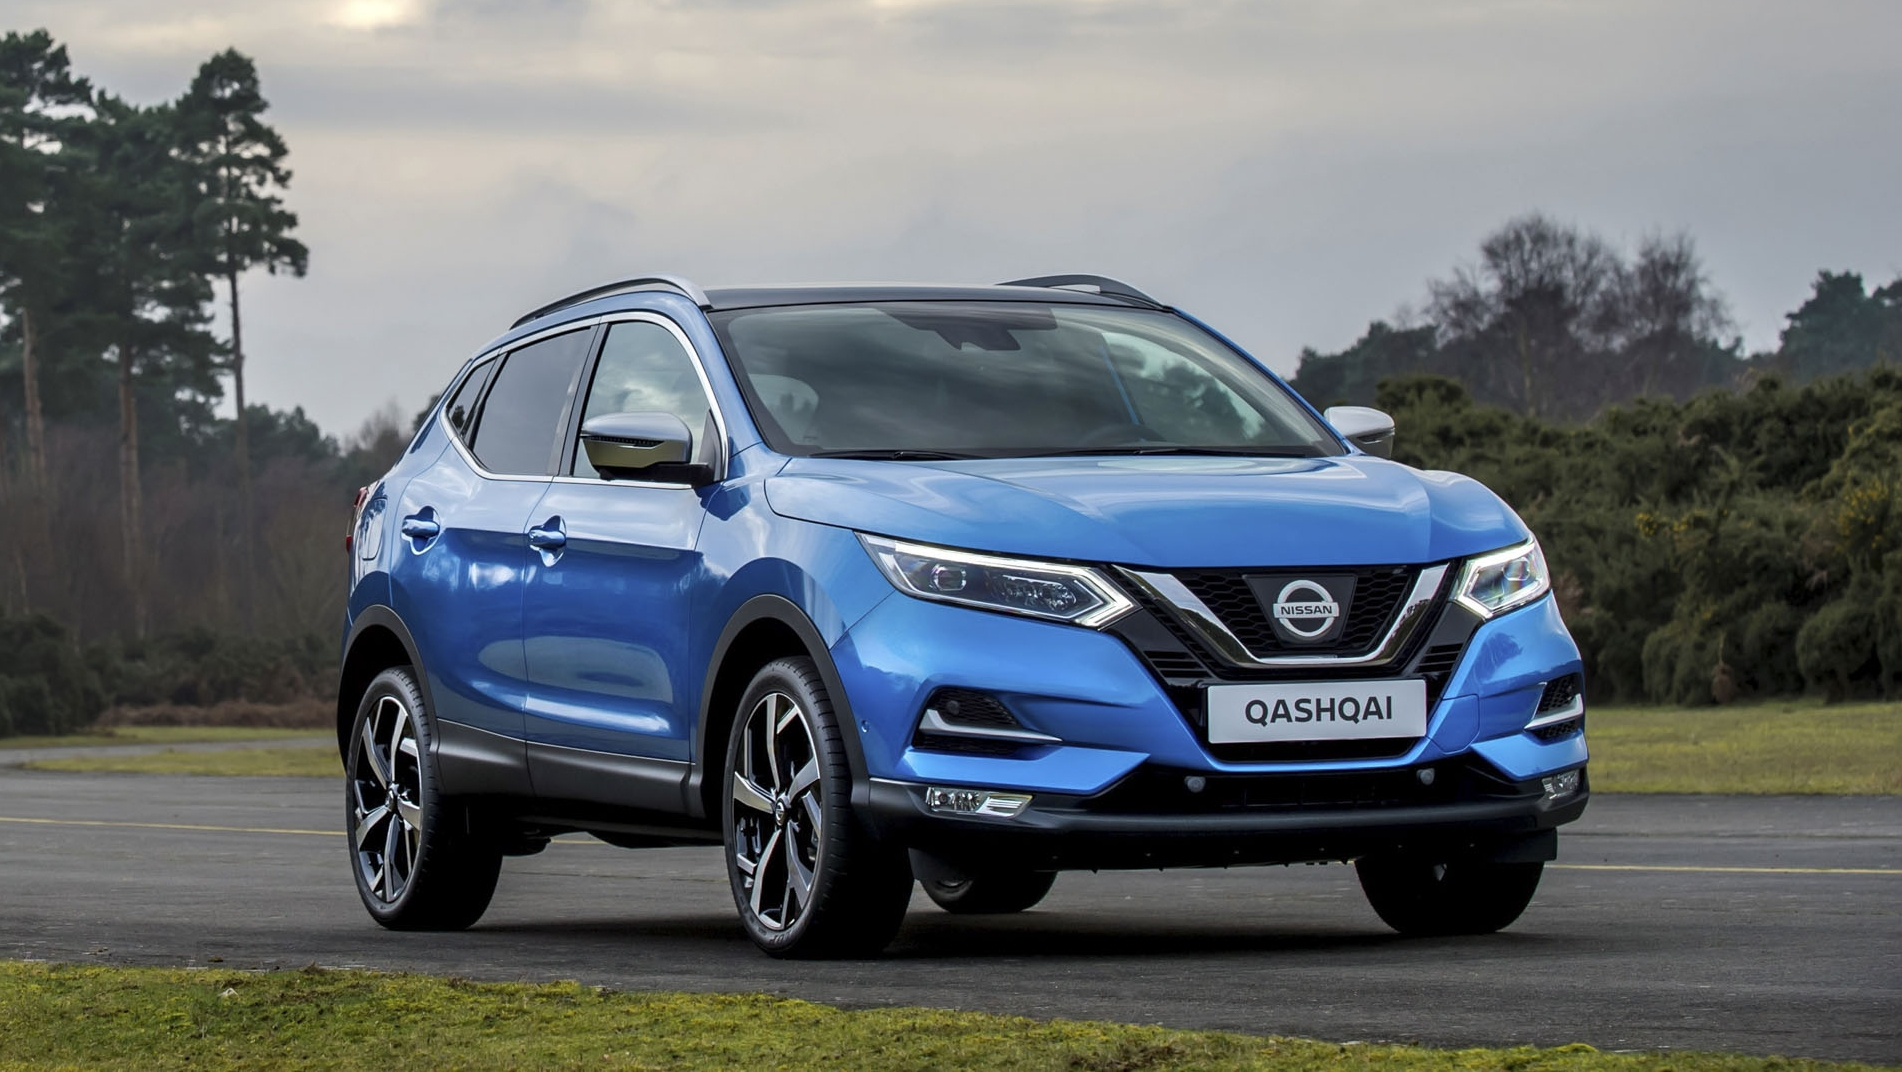 2015 2018 nissan qashqai review gallery top speed. Black Bedroom Furniture Sets. Home Design Ideas